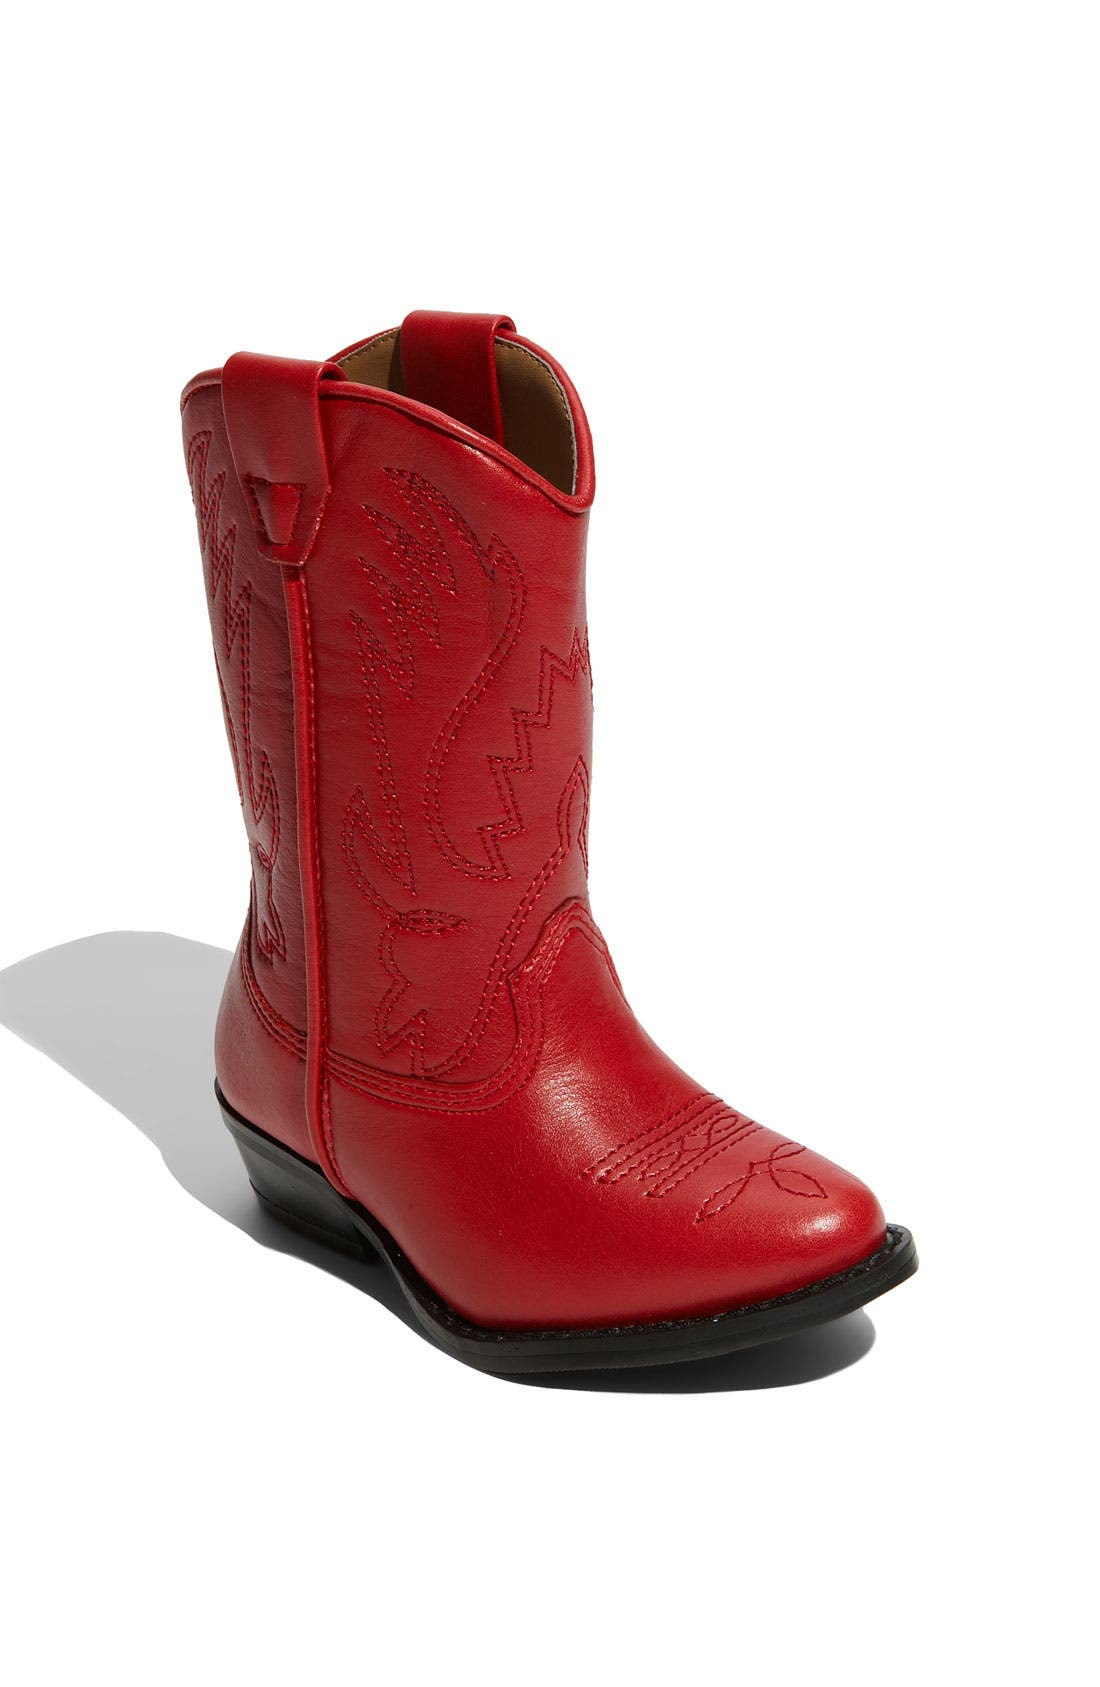 Main Image - Nordstrom 'Cassidy' Faux Leather Boot (Toddler, Little Kid & Big Kid)